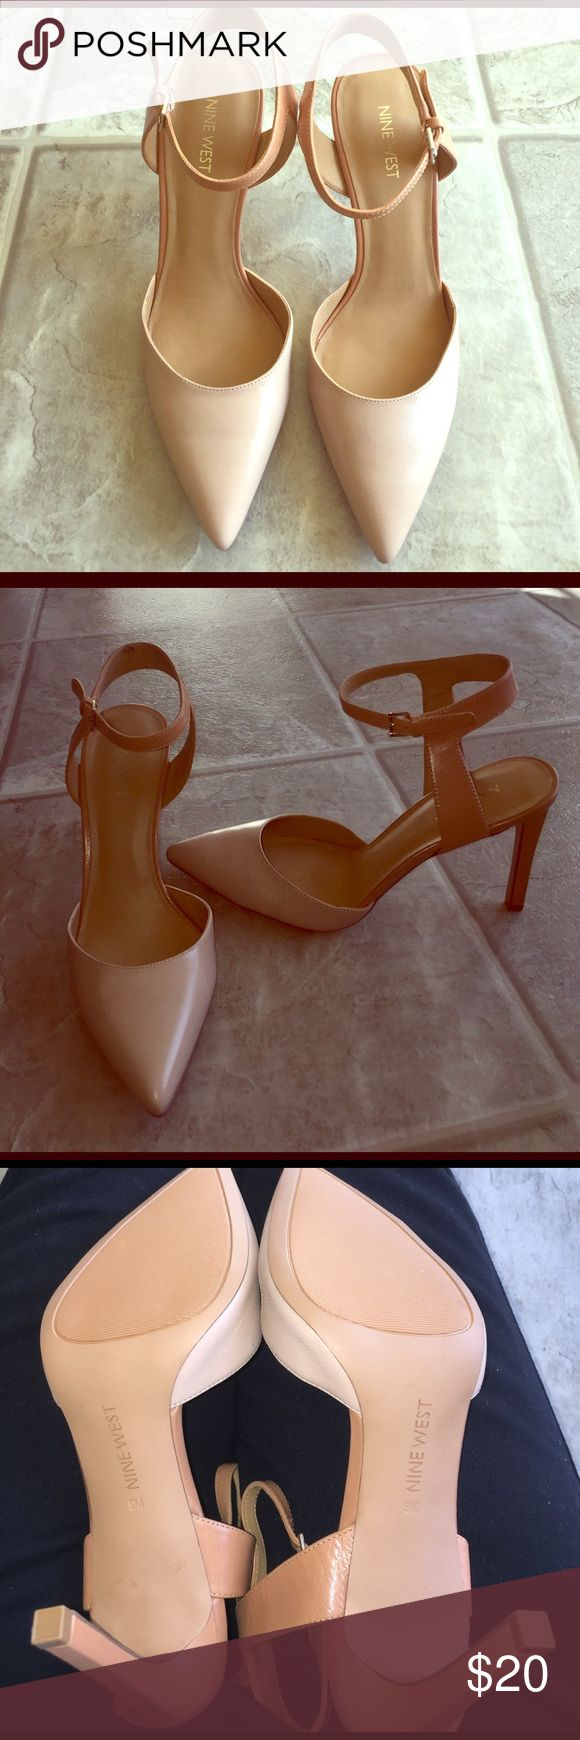 Nude two tones heels NEVER WORN Nine West 2 tone heels with pointed toe. Seriously beautiful shoes (never get a chance to wear them) the two different nude colors make these shoes so unique! Size 9 Nine West Shoes Heels